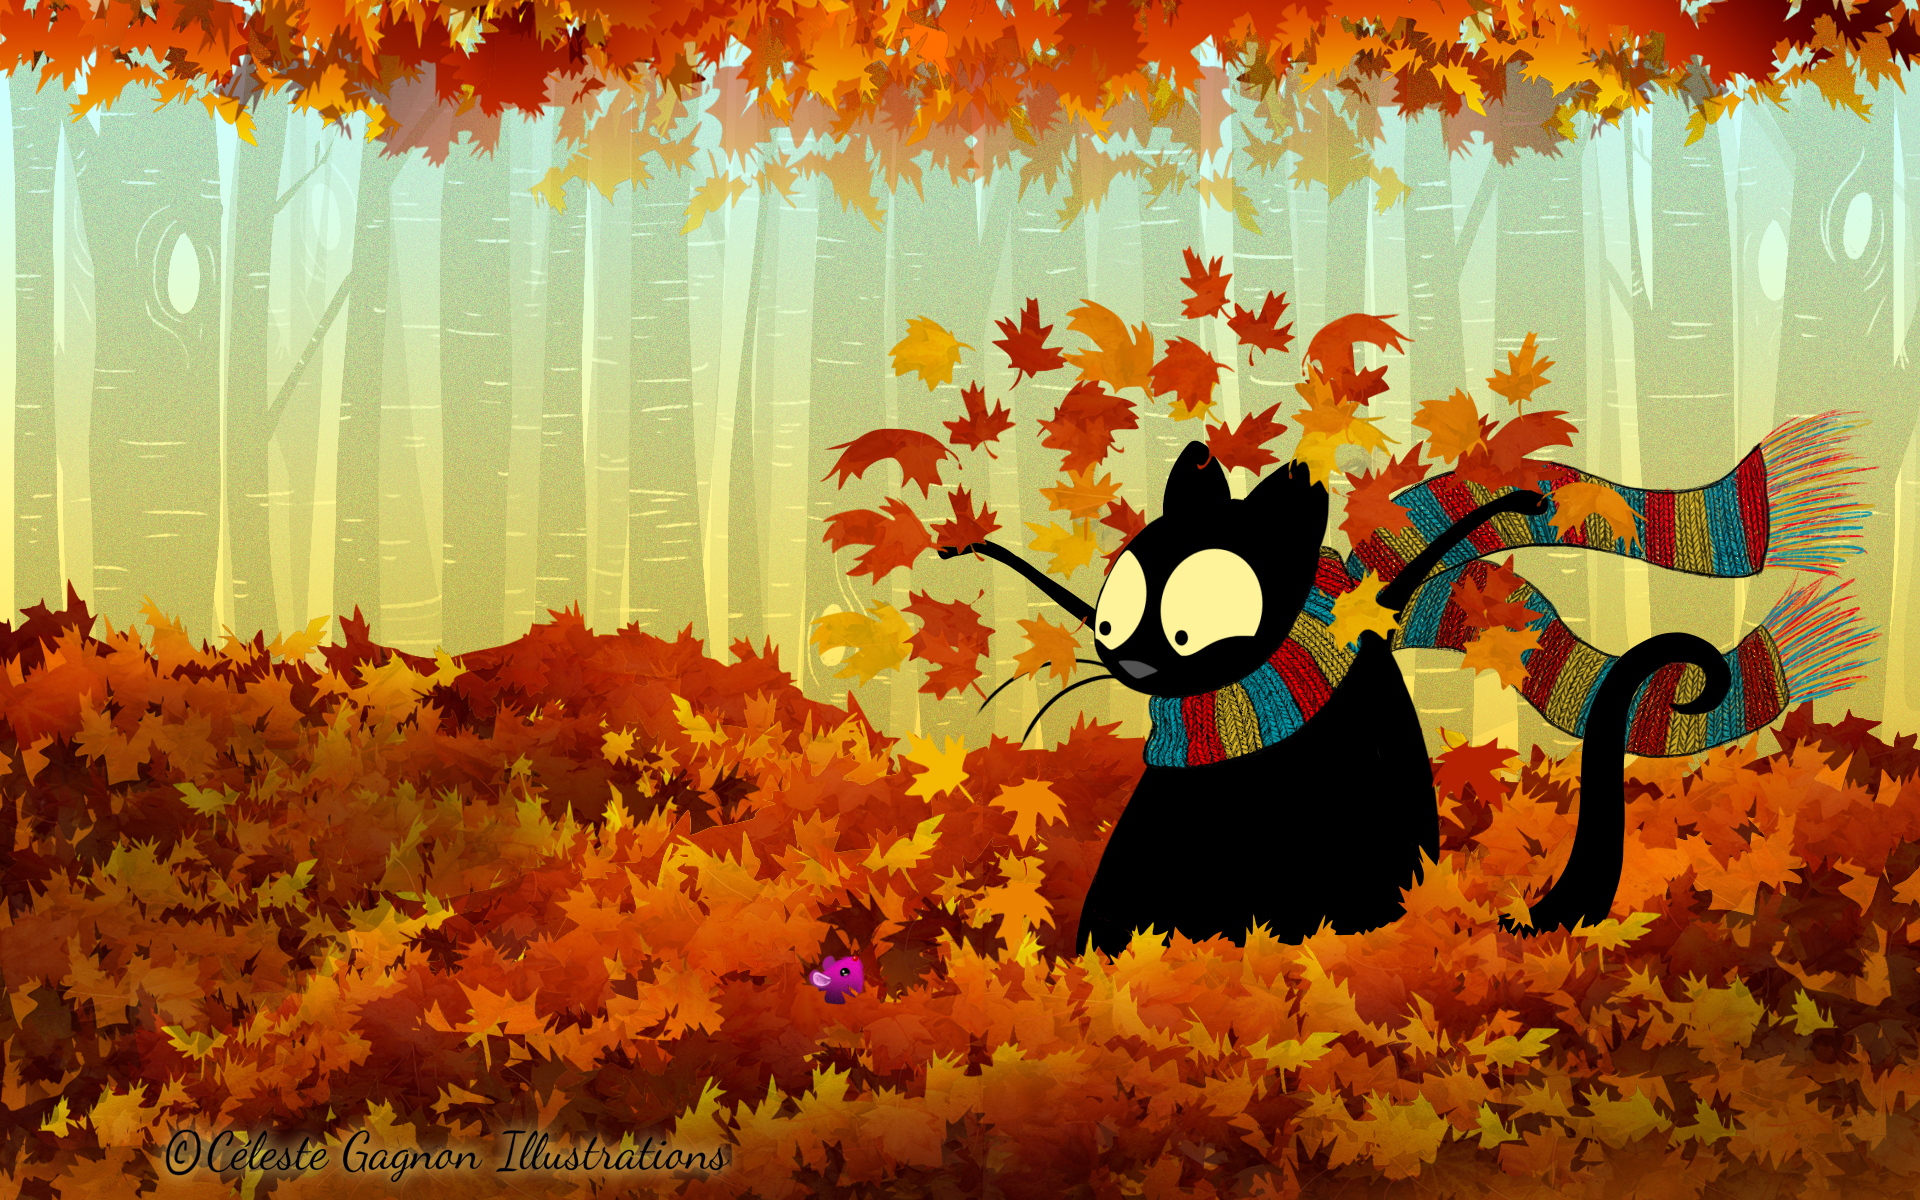 Echo the Cat Fall wallpaper Cleste Gagnon Illustrations 1920x1200